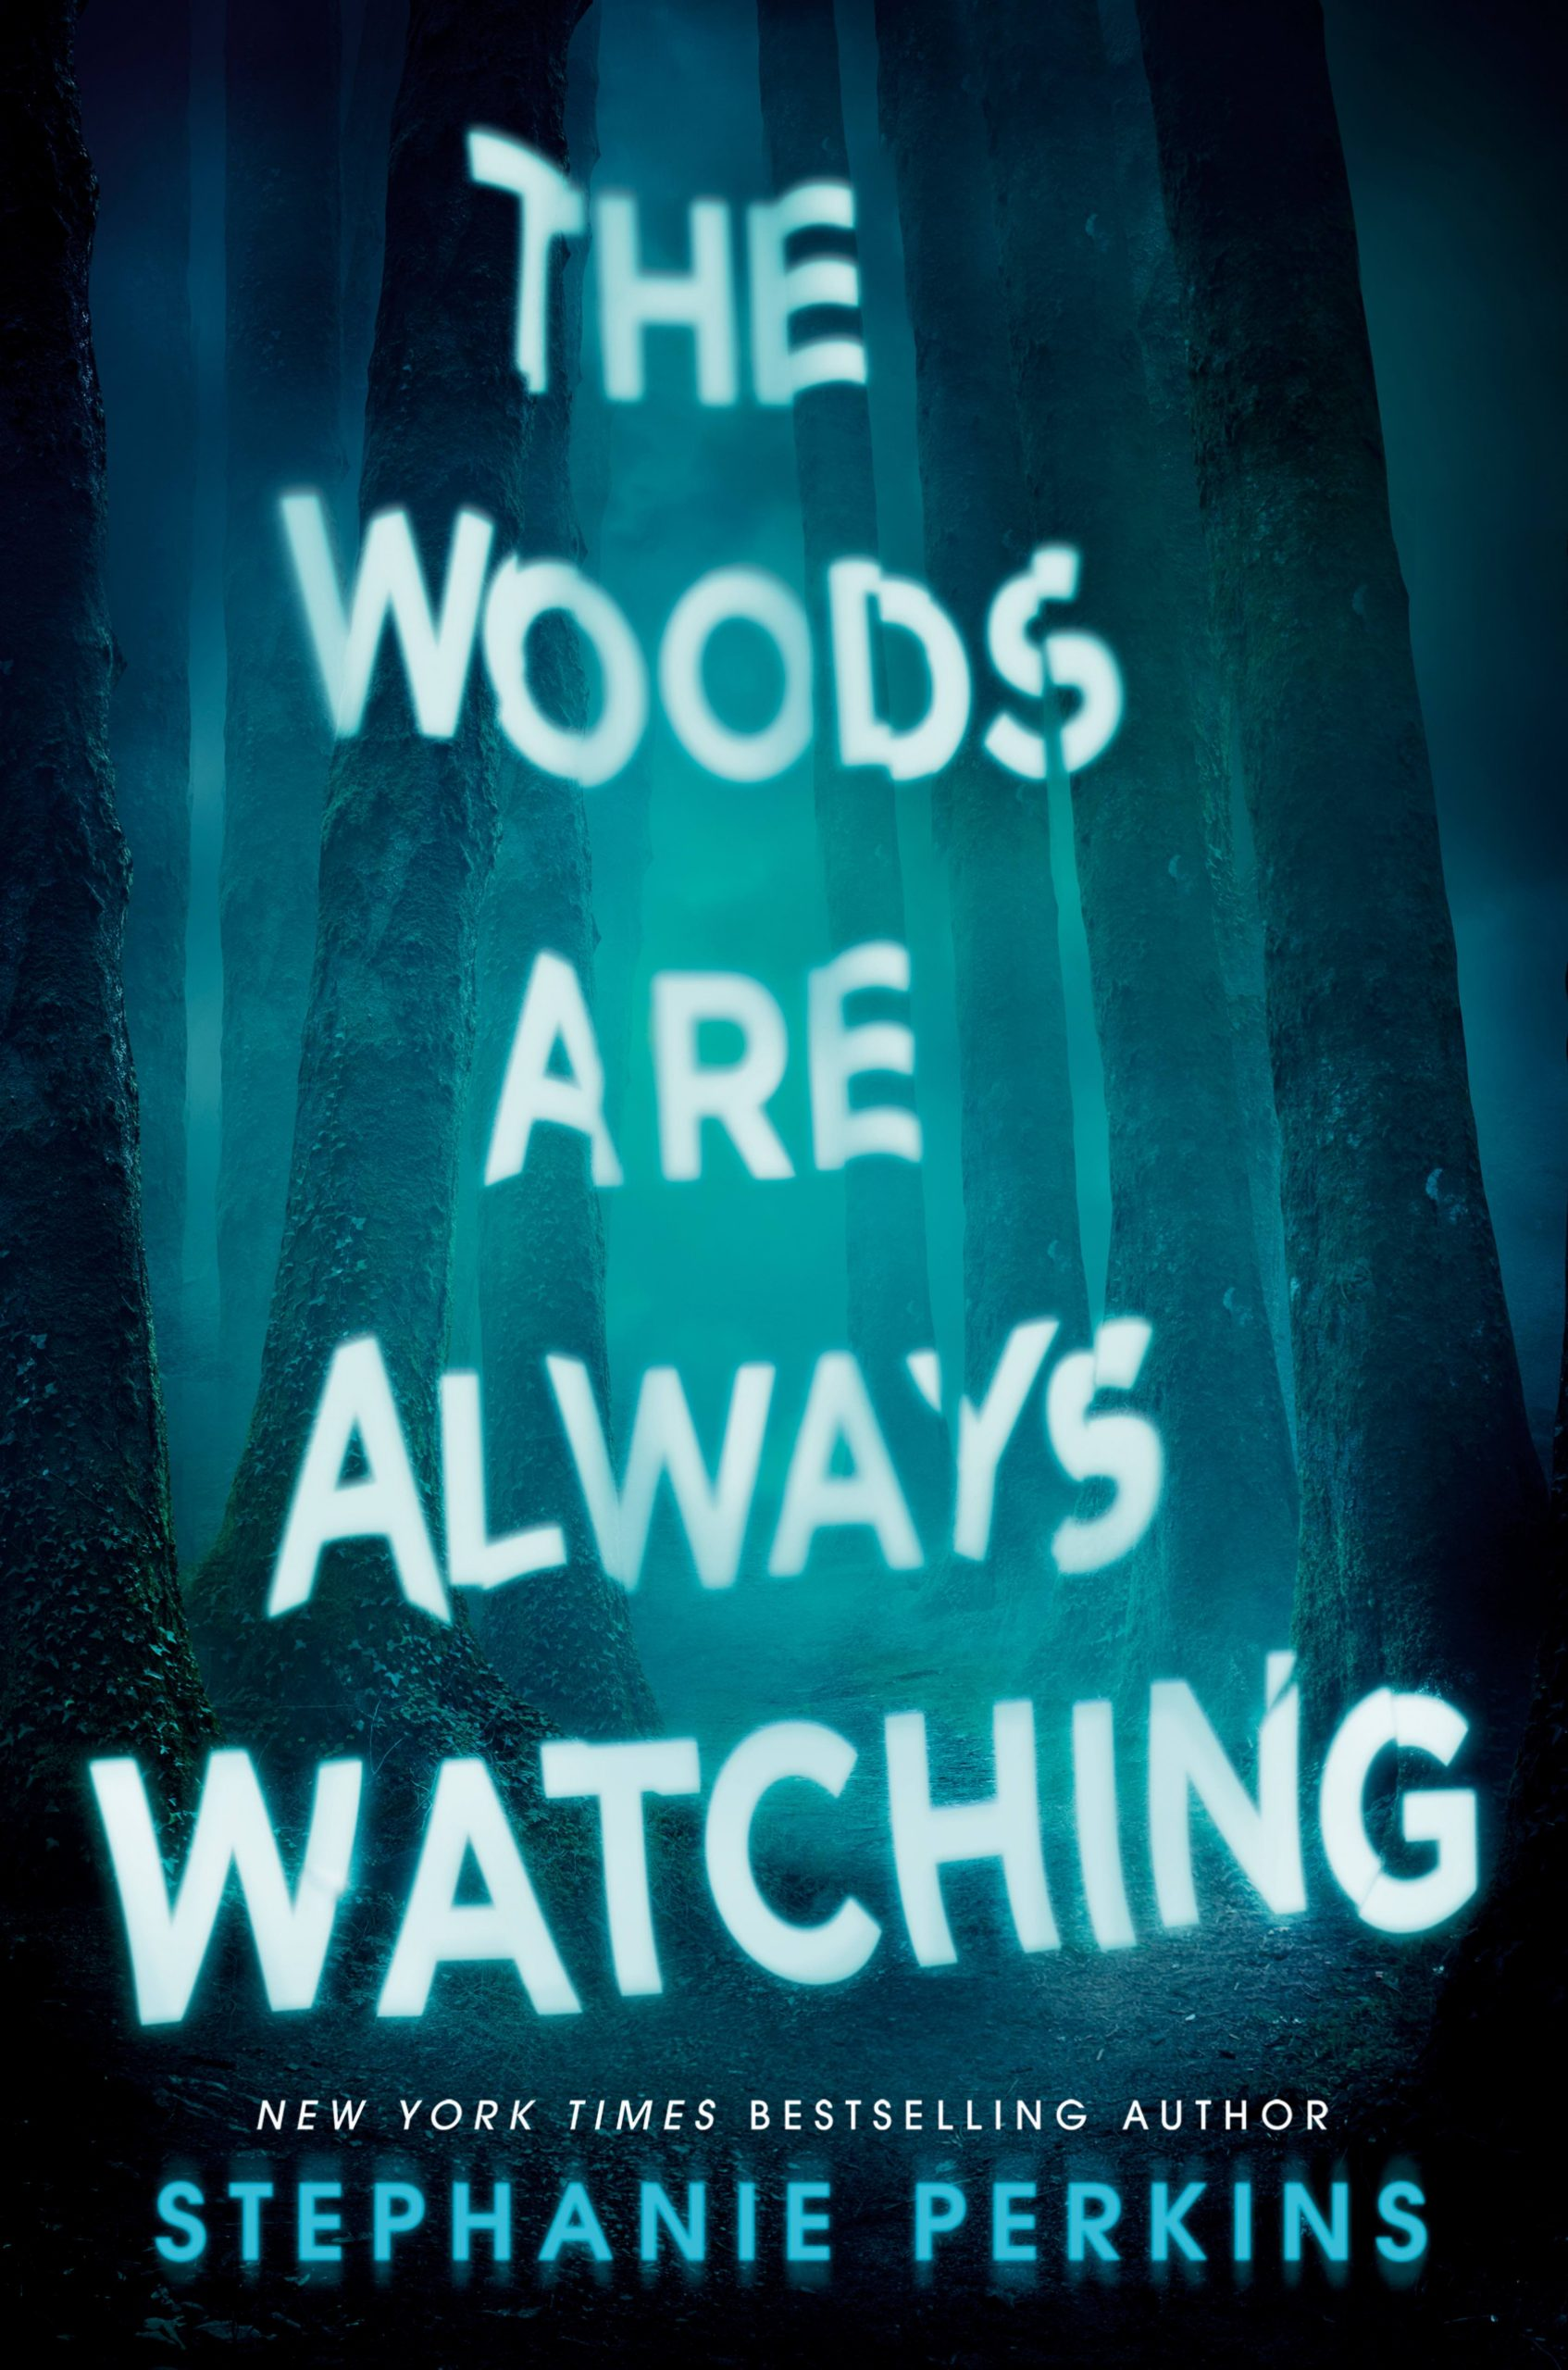 The Woods Are Always Watching Release Date? Stephanie Perkins 2021 New Book